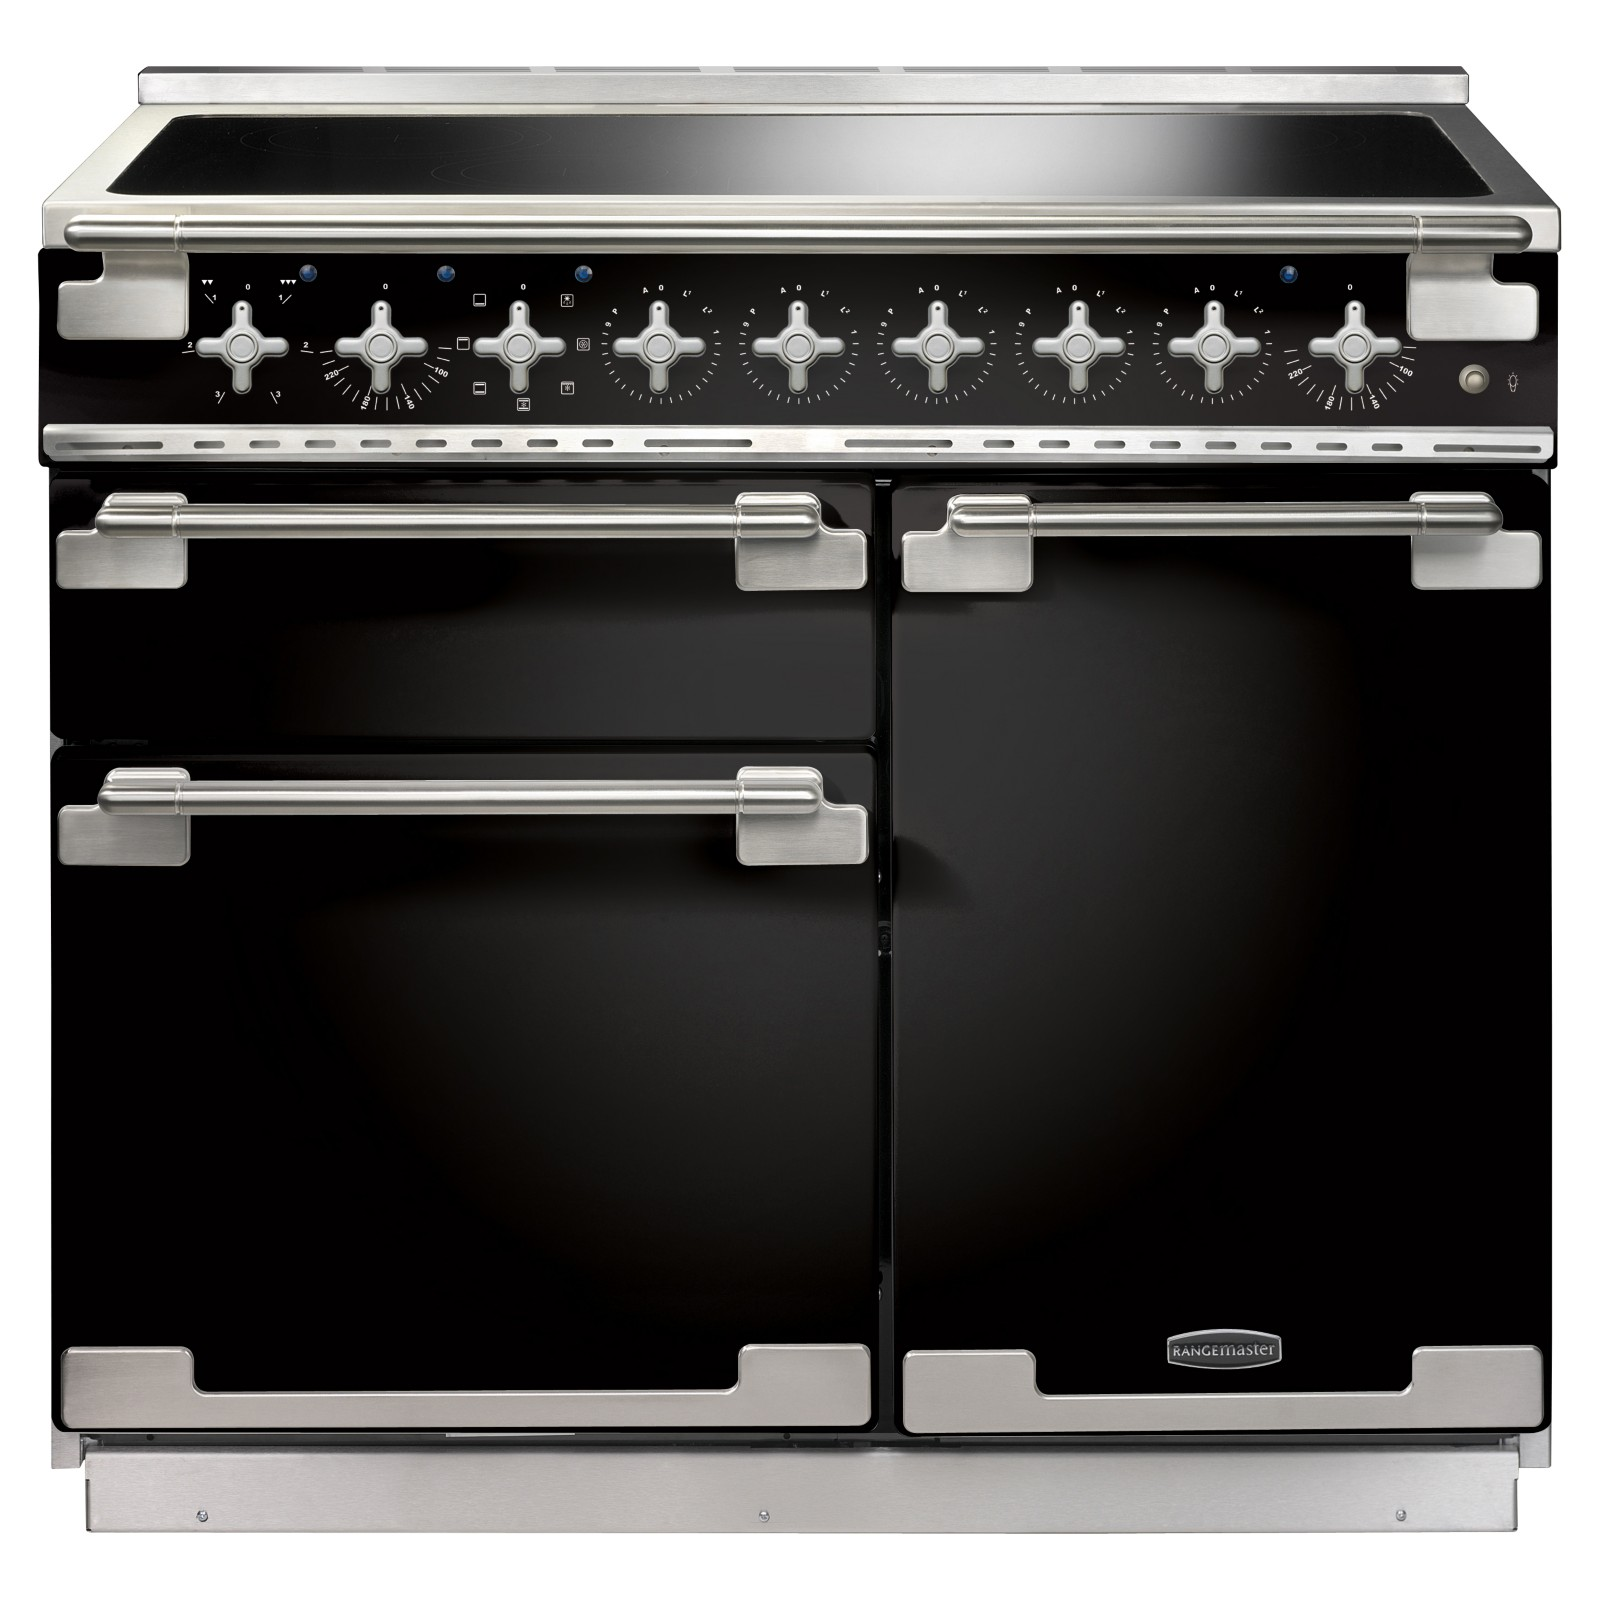 Rangemaster Elise 100 Induction Hob Range Cooker Gloss Black